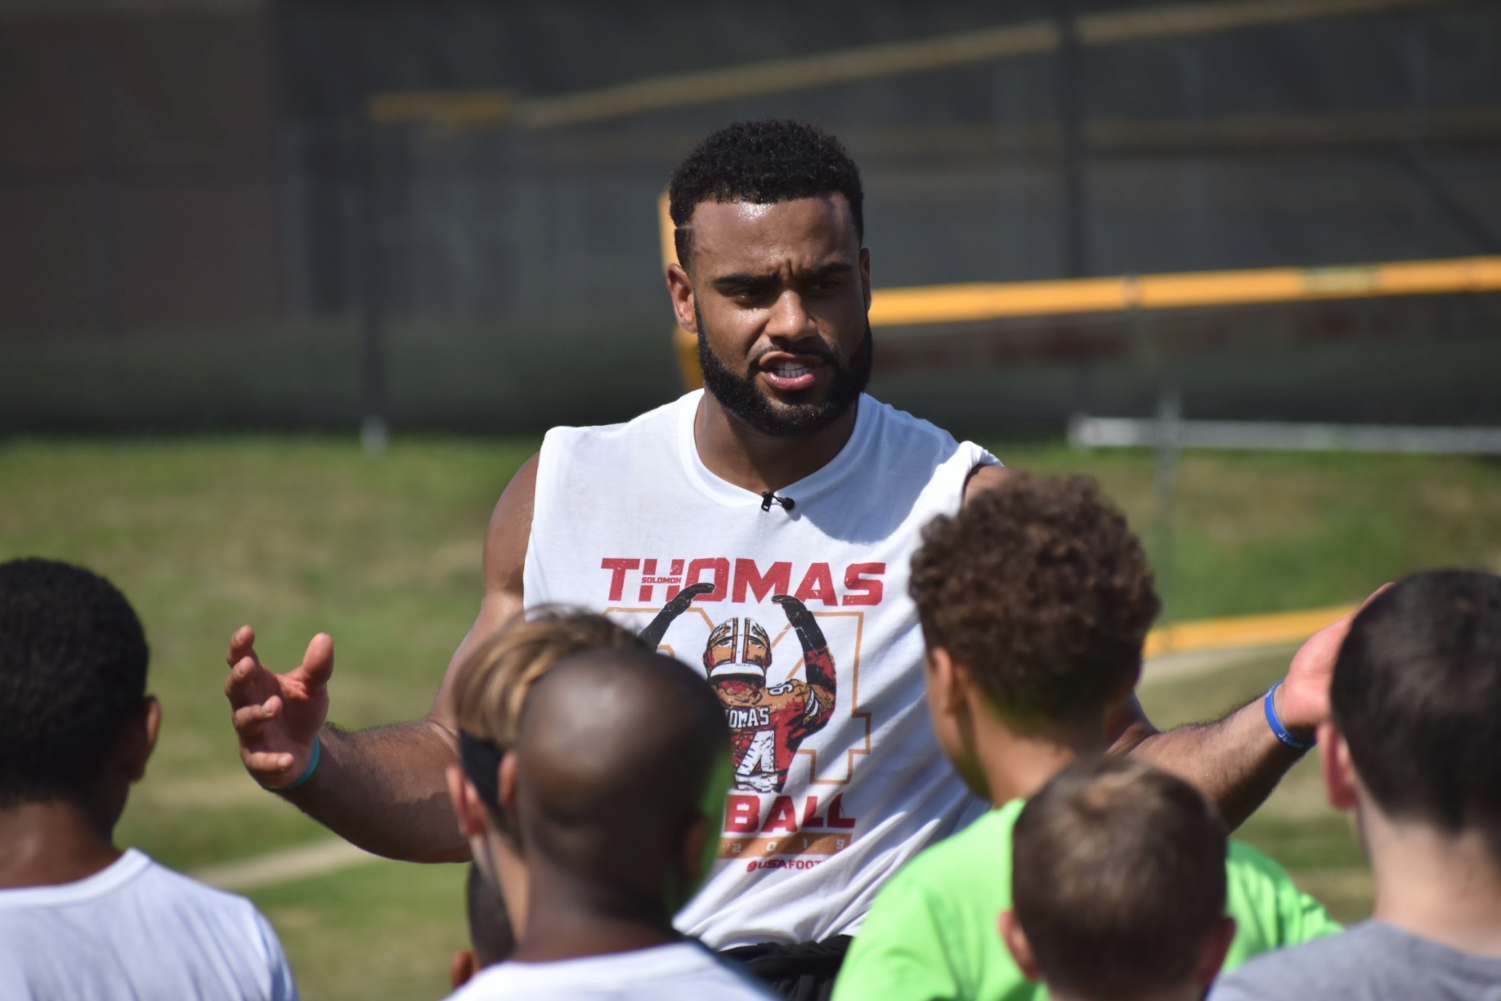 San Francisco 49ers defensive end and Coppell High School 2014 graduate Solomon Thomas gives instructions for a group of campers attending the Solomon Thomas Youth Football Camp. The three-hour camp consisted of rotating stations for kids ages 8-16 and took place at Buddy Echols Field on Saturday morning.